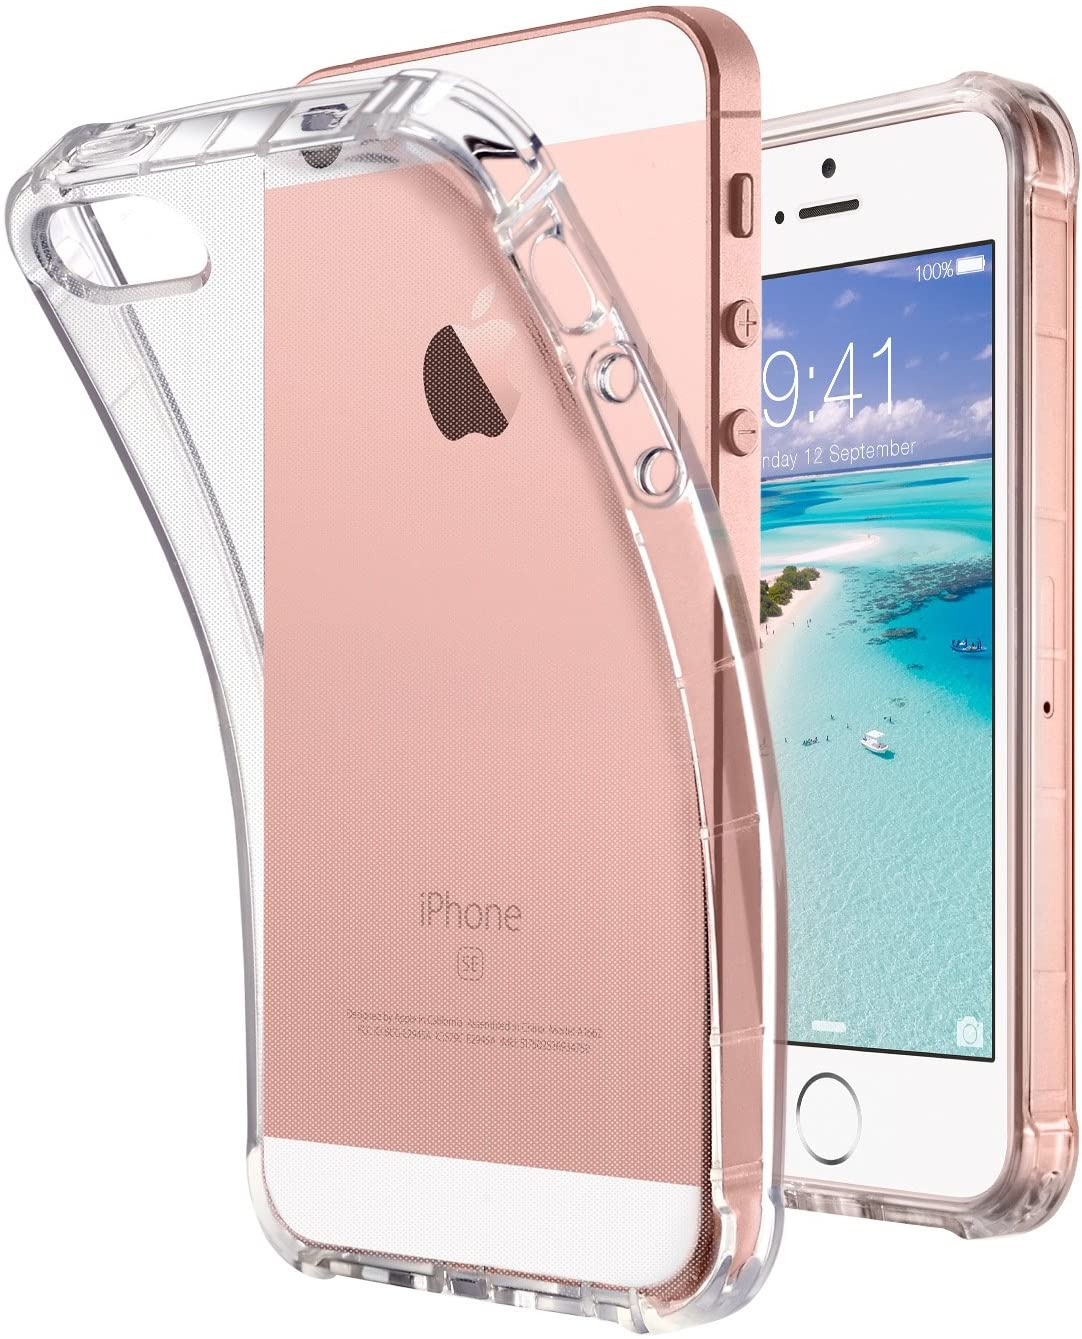 ULAK iPhone SE Case Clear, iPhone 5s case, iPhone 5 case, Clear Slim Fit 5/5S/SE Case with Transparent Flexible Soft TPU Bumper Shock-Absorption Cover -Retail Packaging - HD Clear